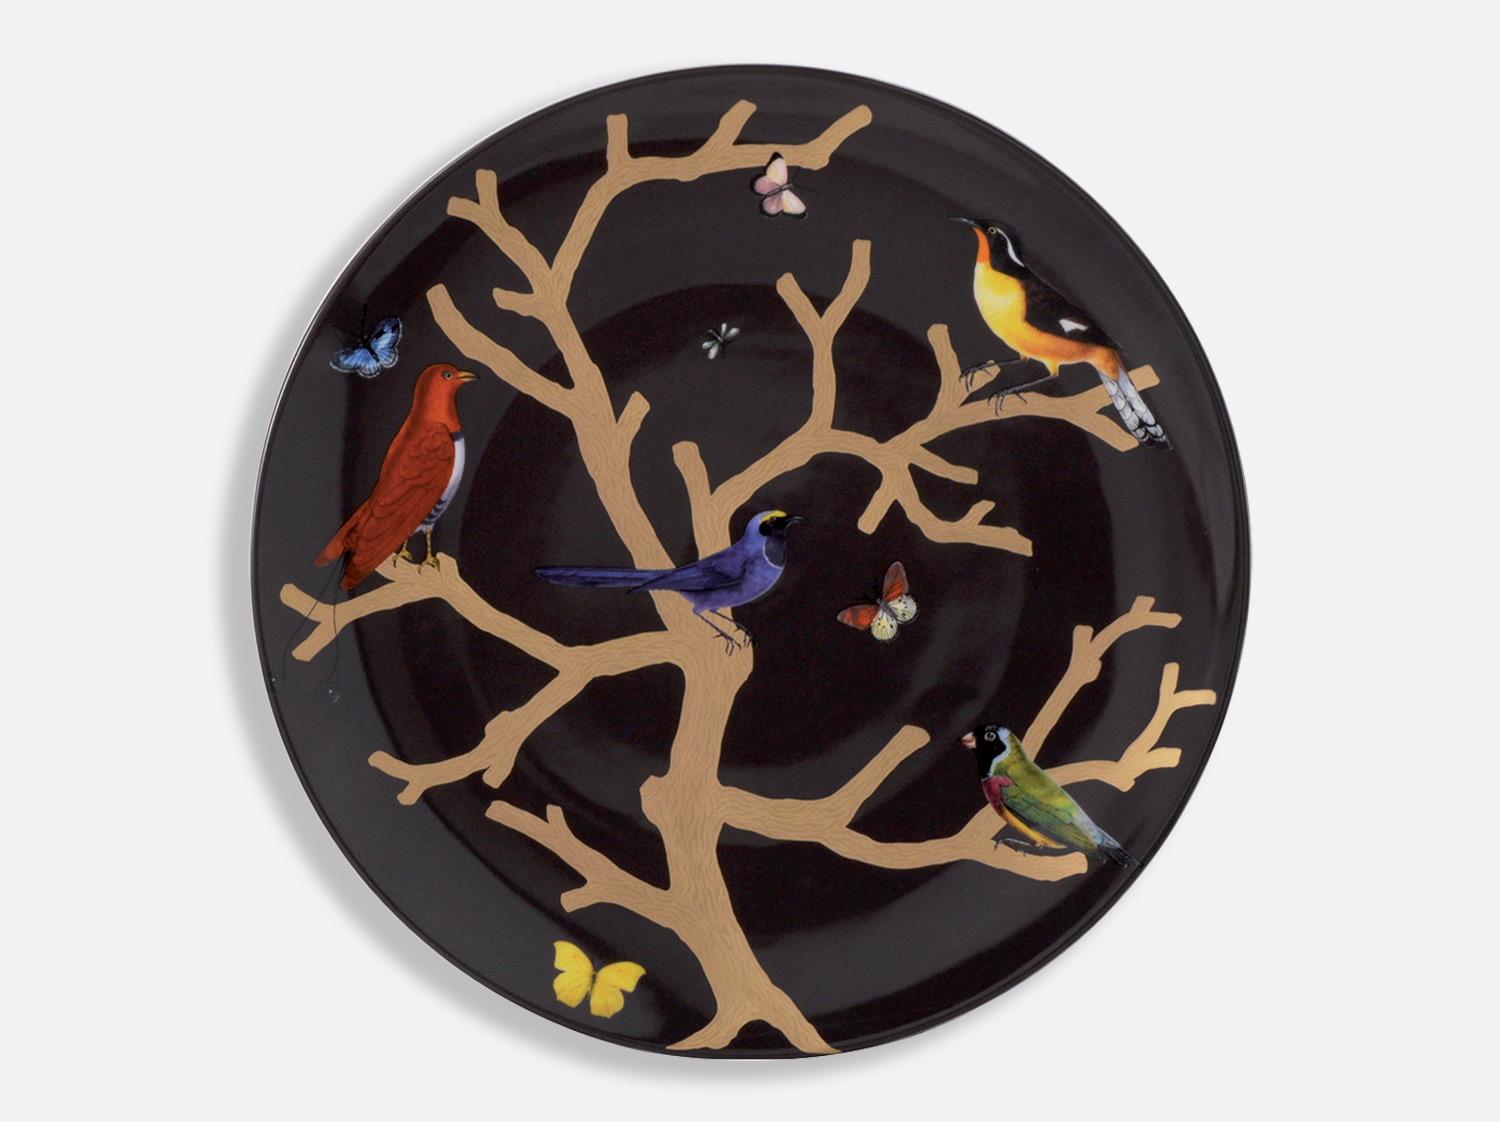 China Coupe plate 36 cm of the collection Aux oiseaux | Bernardaud